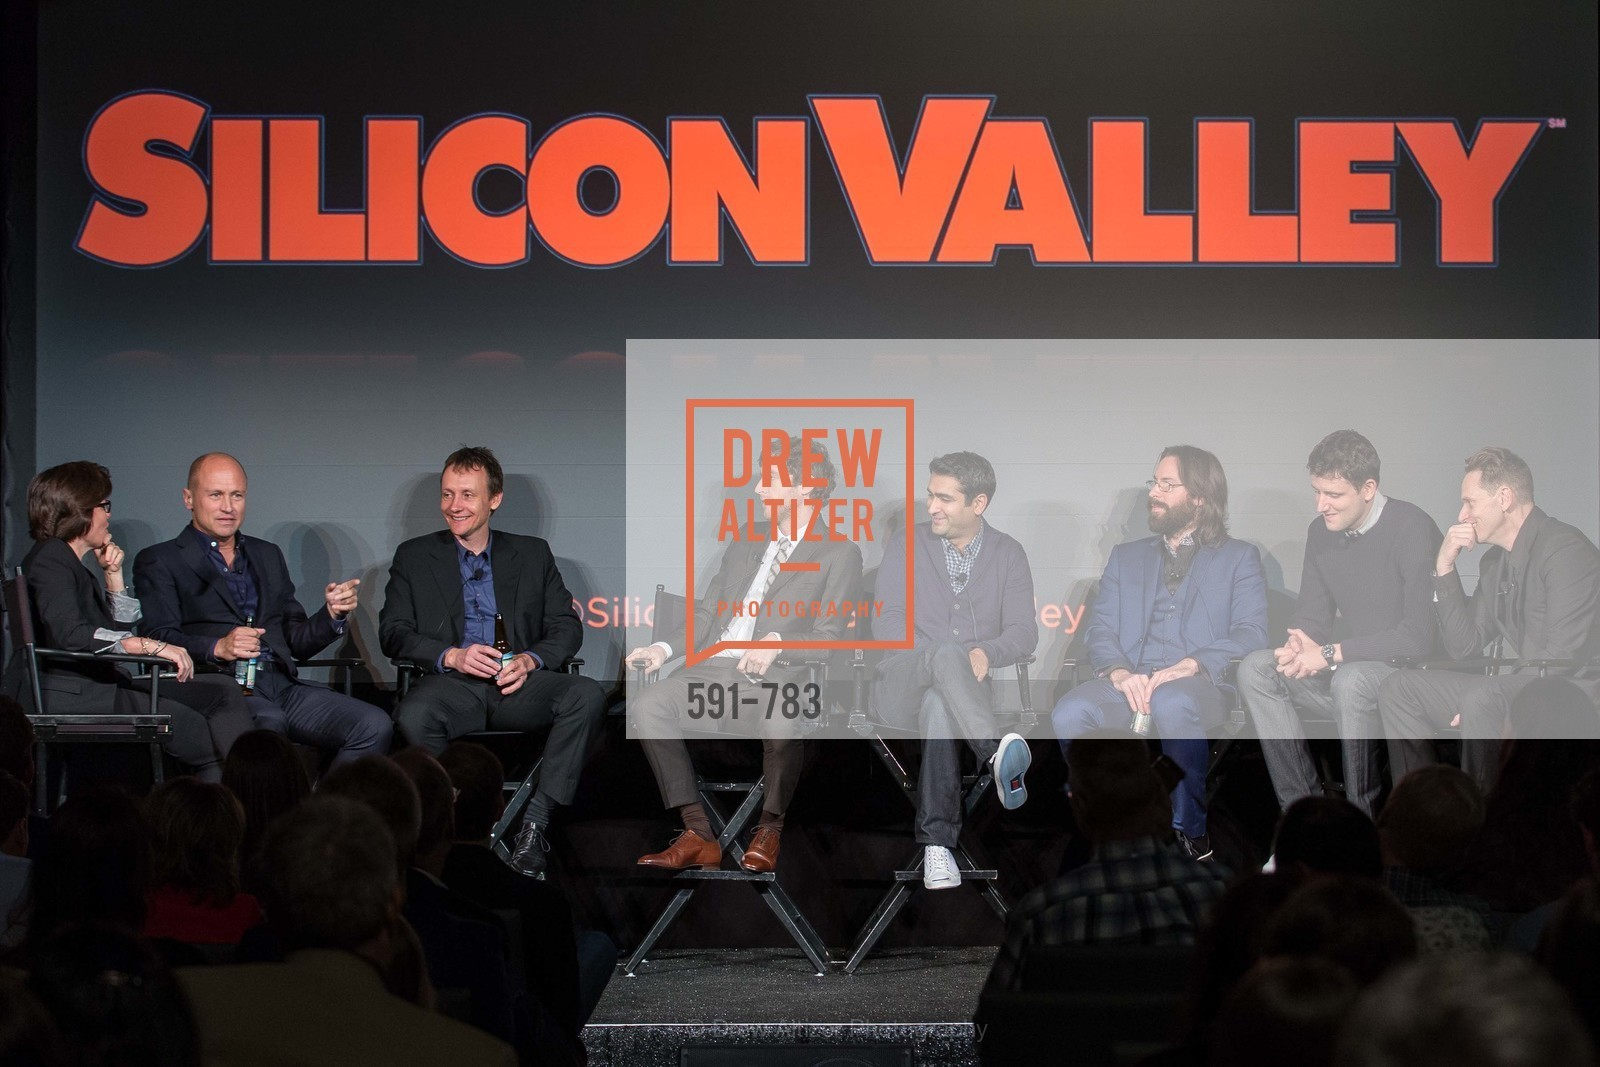 Kara Swisher, Mike Judge, Alec Berg, Thomas Middleditch, Kumail Nanjiani, Martin Starr, Zach Woods, Matt Ross, HBO'S SILICON VALLEY San Francisco Screening, US, April 9th, 2015,Drew Altizer, Drew Altizer Photography, full-service event agency, private events, San Francisco photographer, photographer California